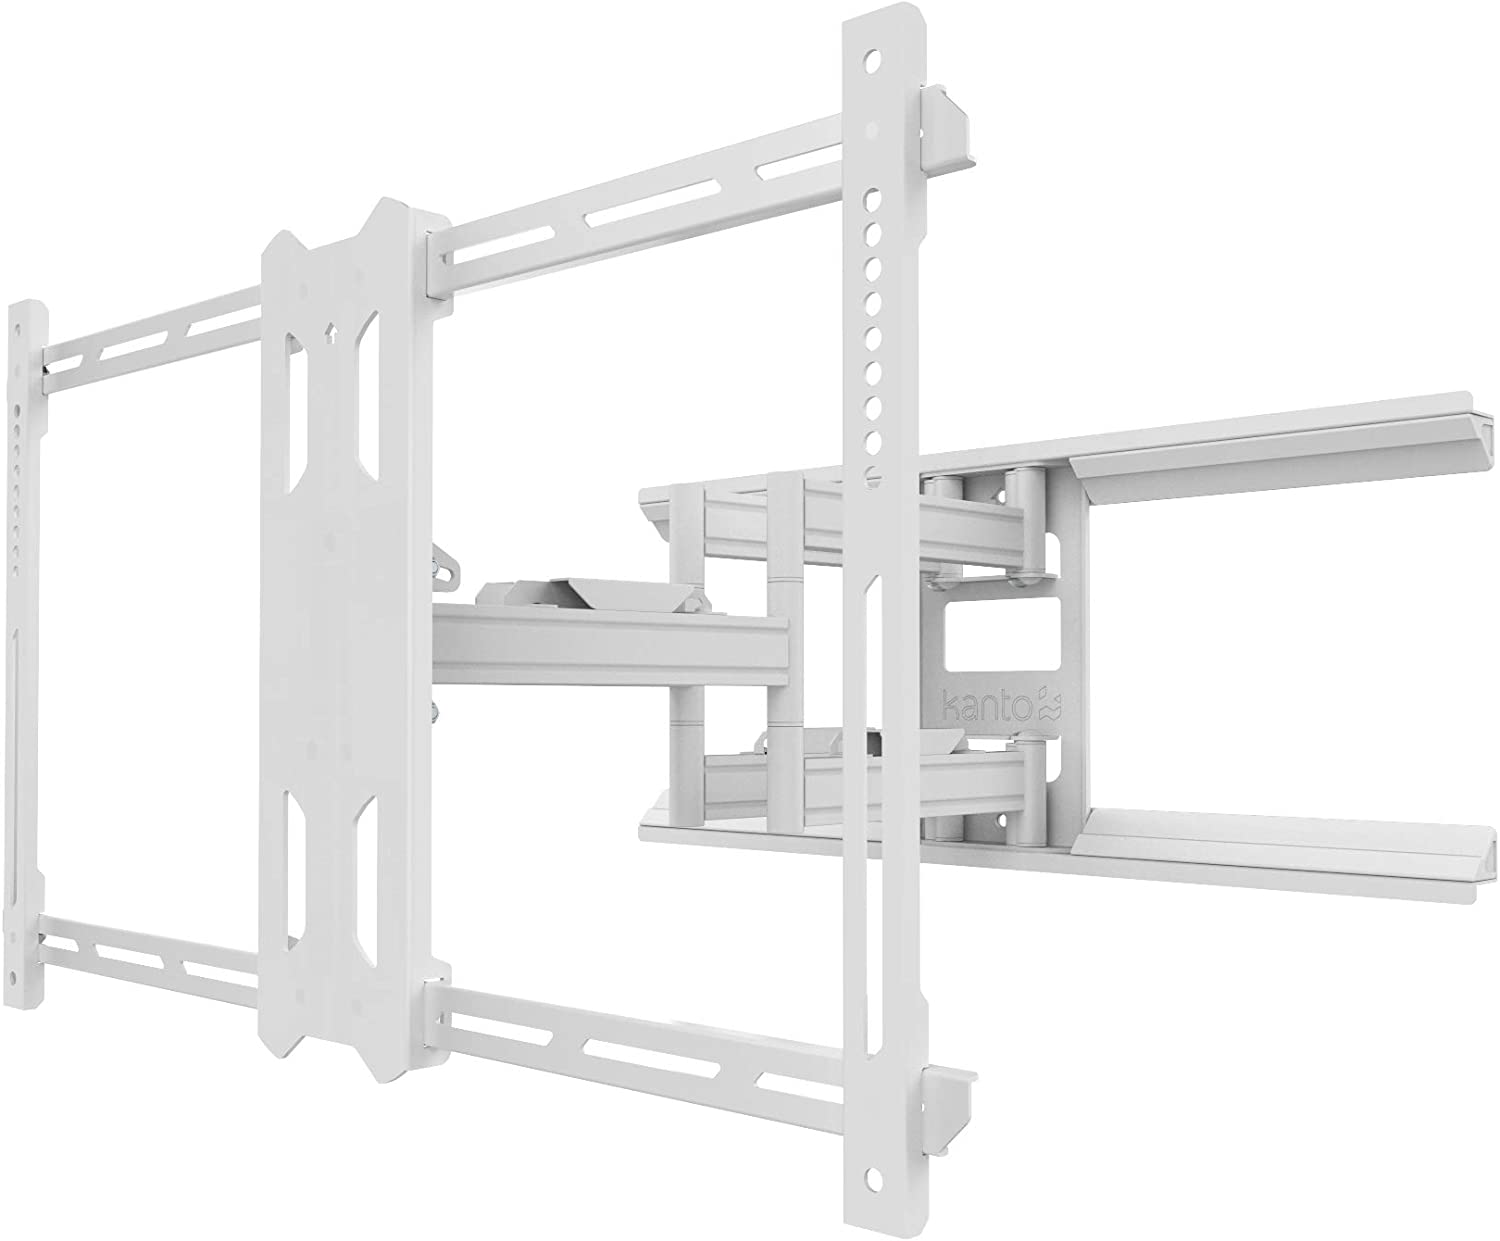 Kanto PDX680W Full Motion Mount for 39-inch to 80-inch TVs, White